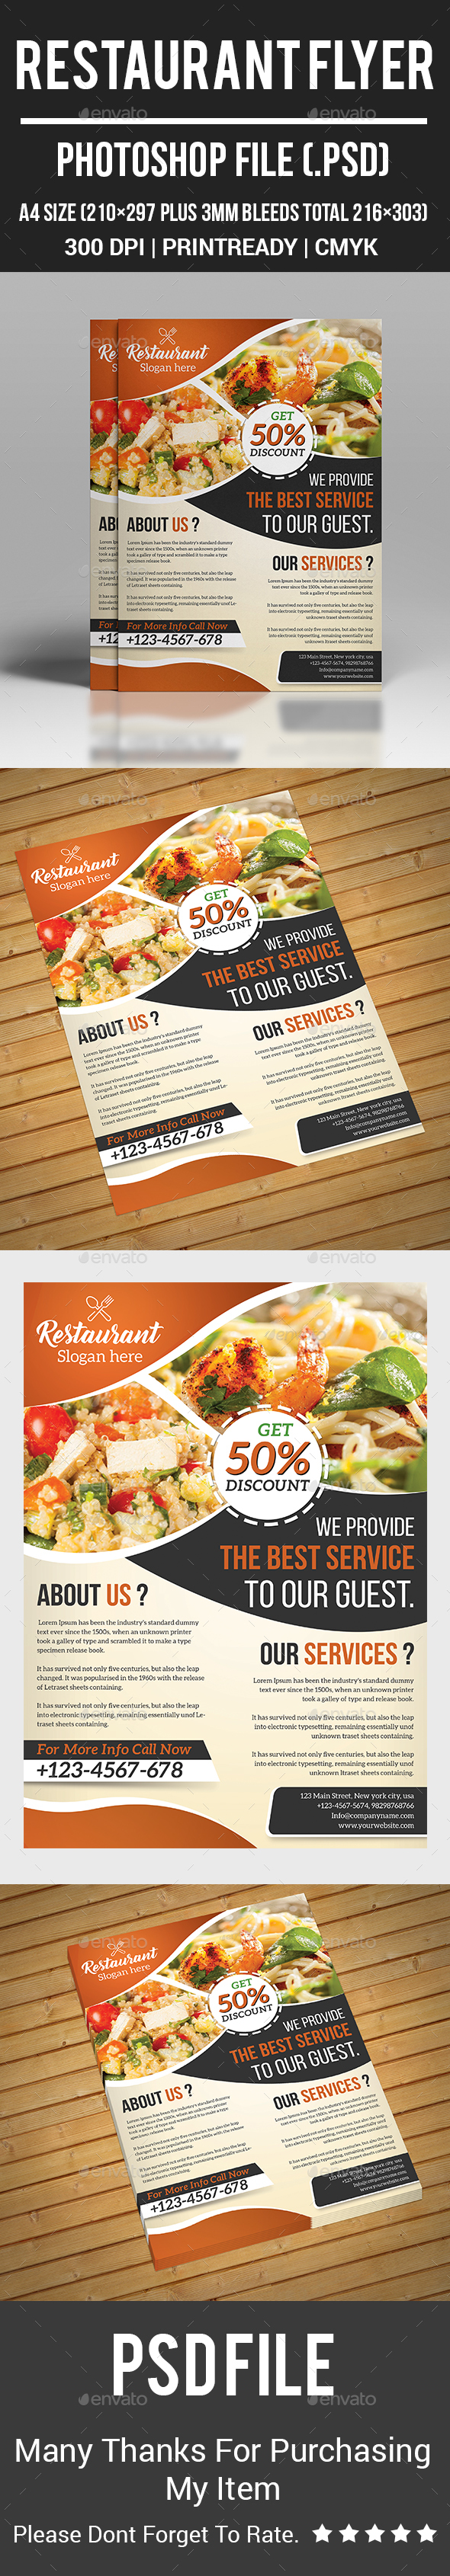 GraphicRiver Restaurant Flyer 20554331